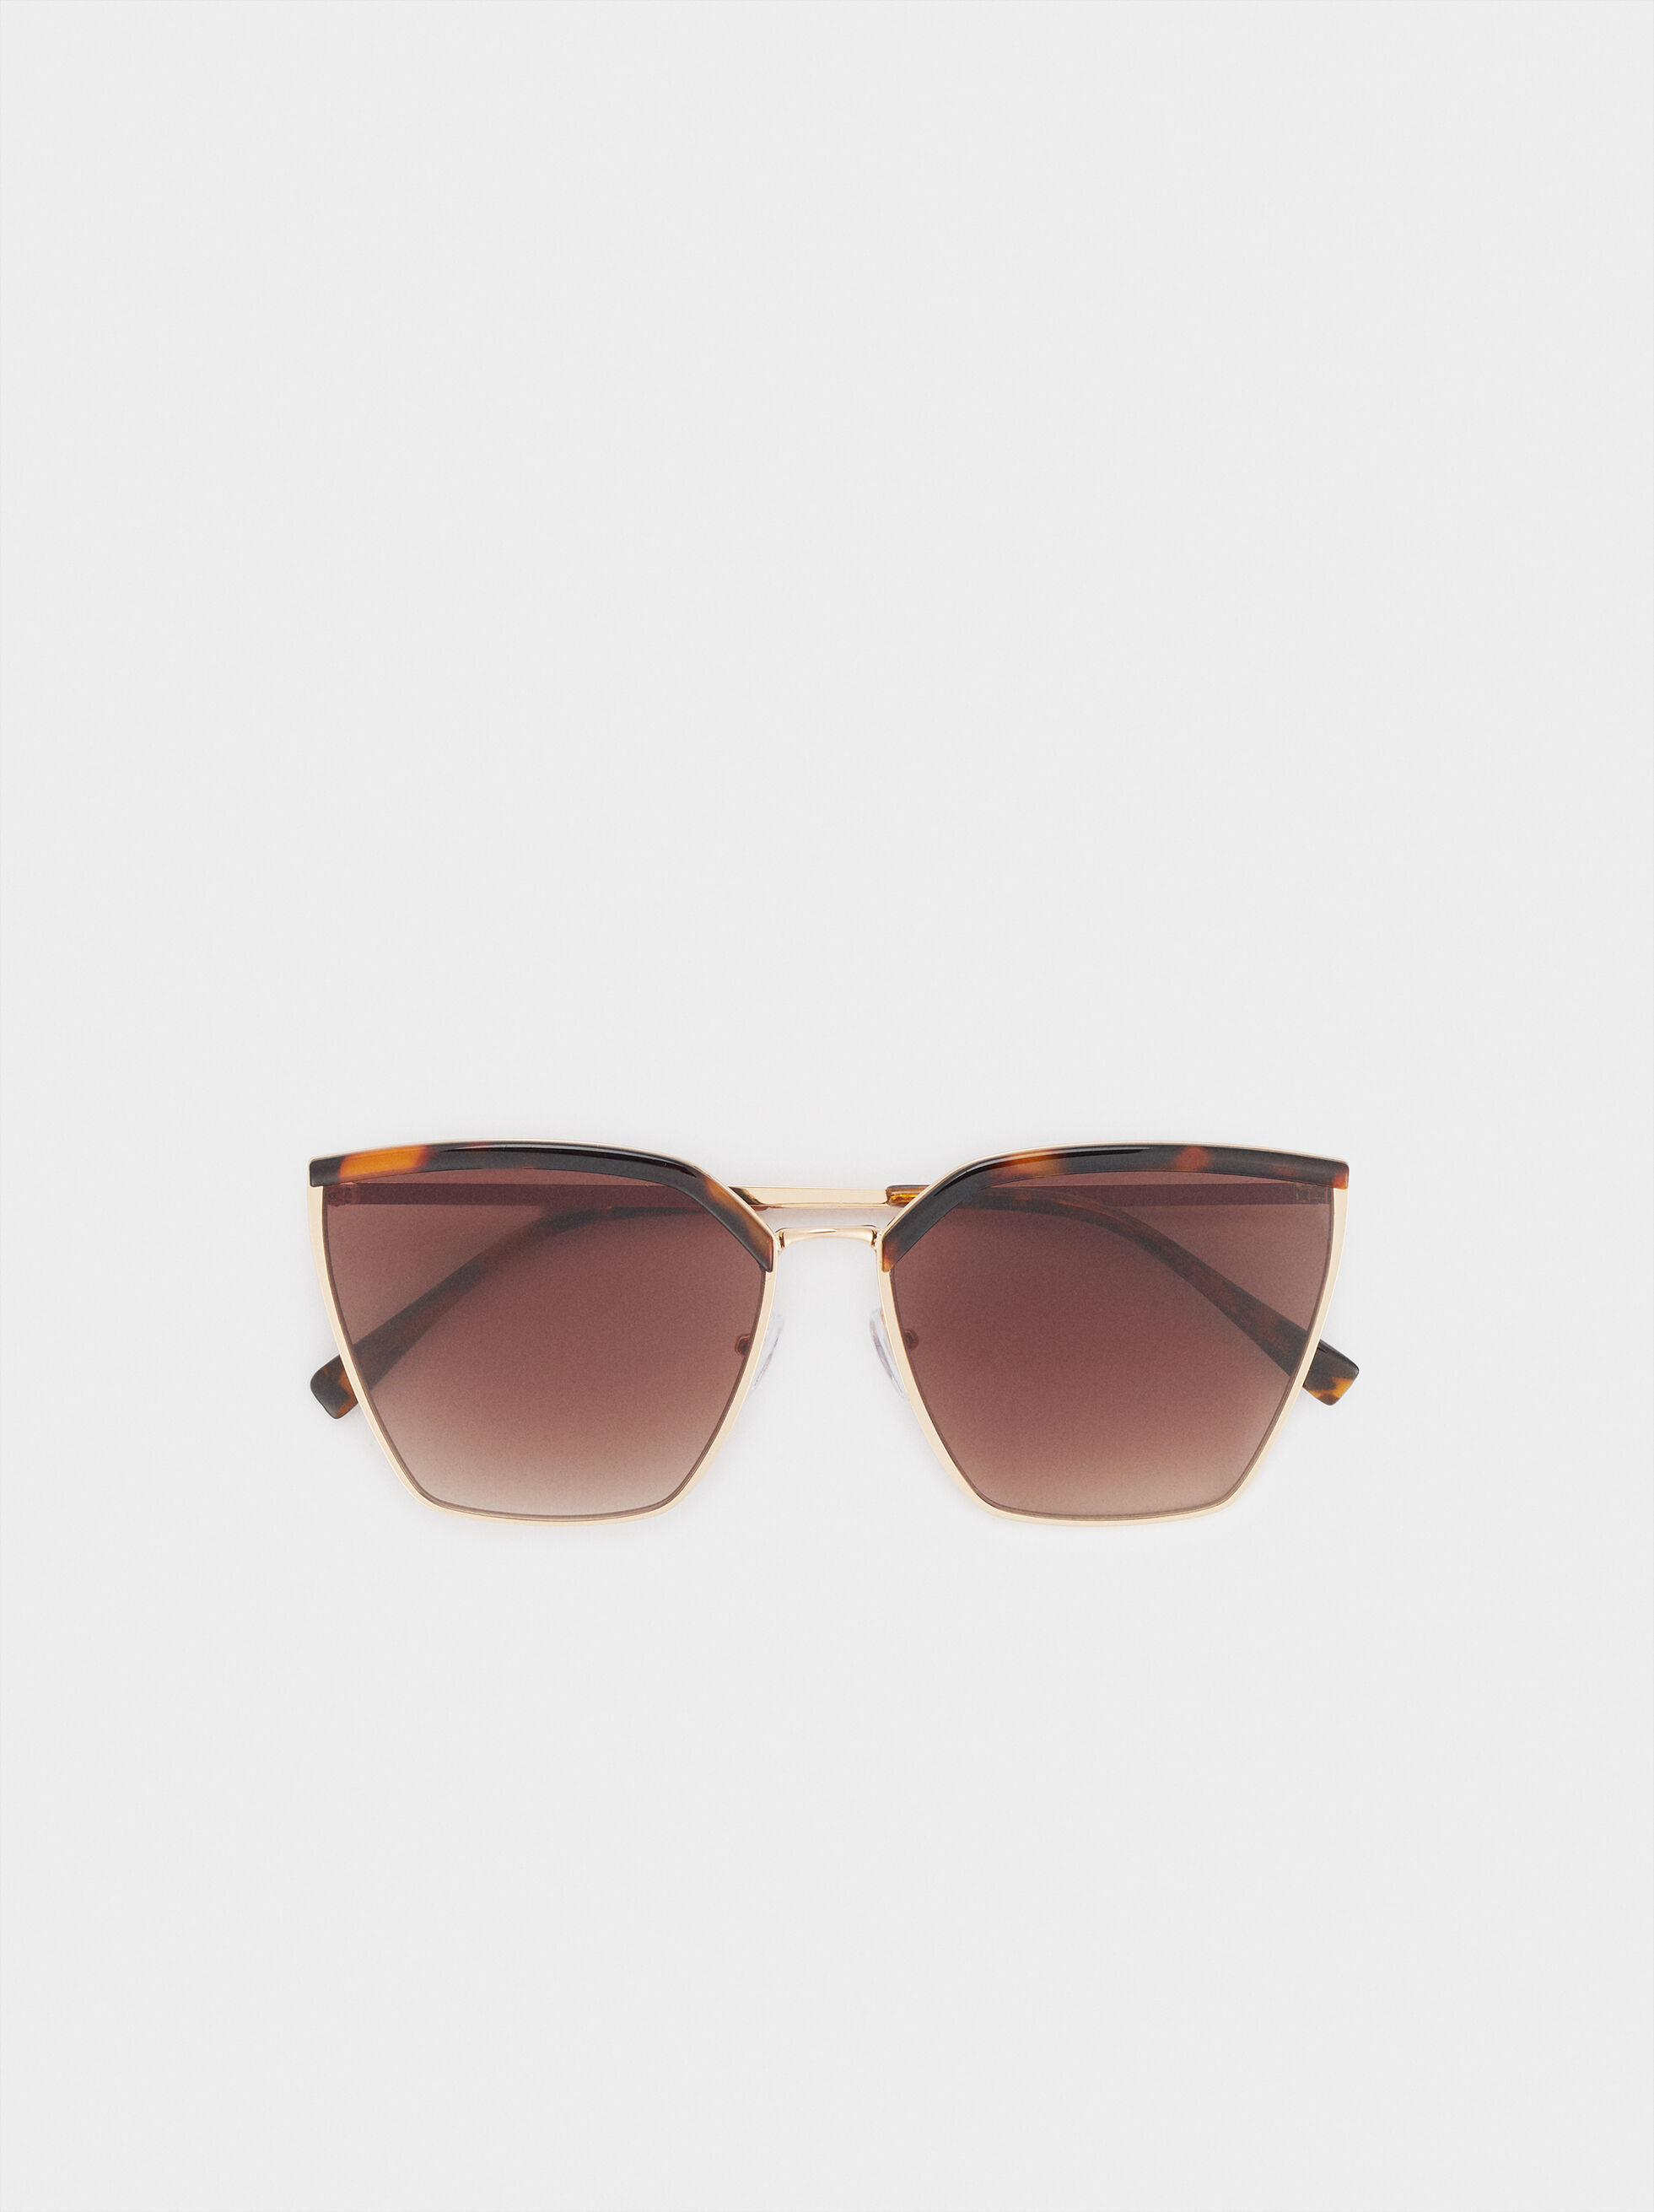 General Sunglasses Sunglasses, Brown, hi-res